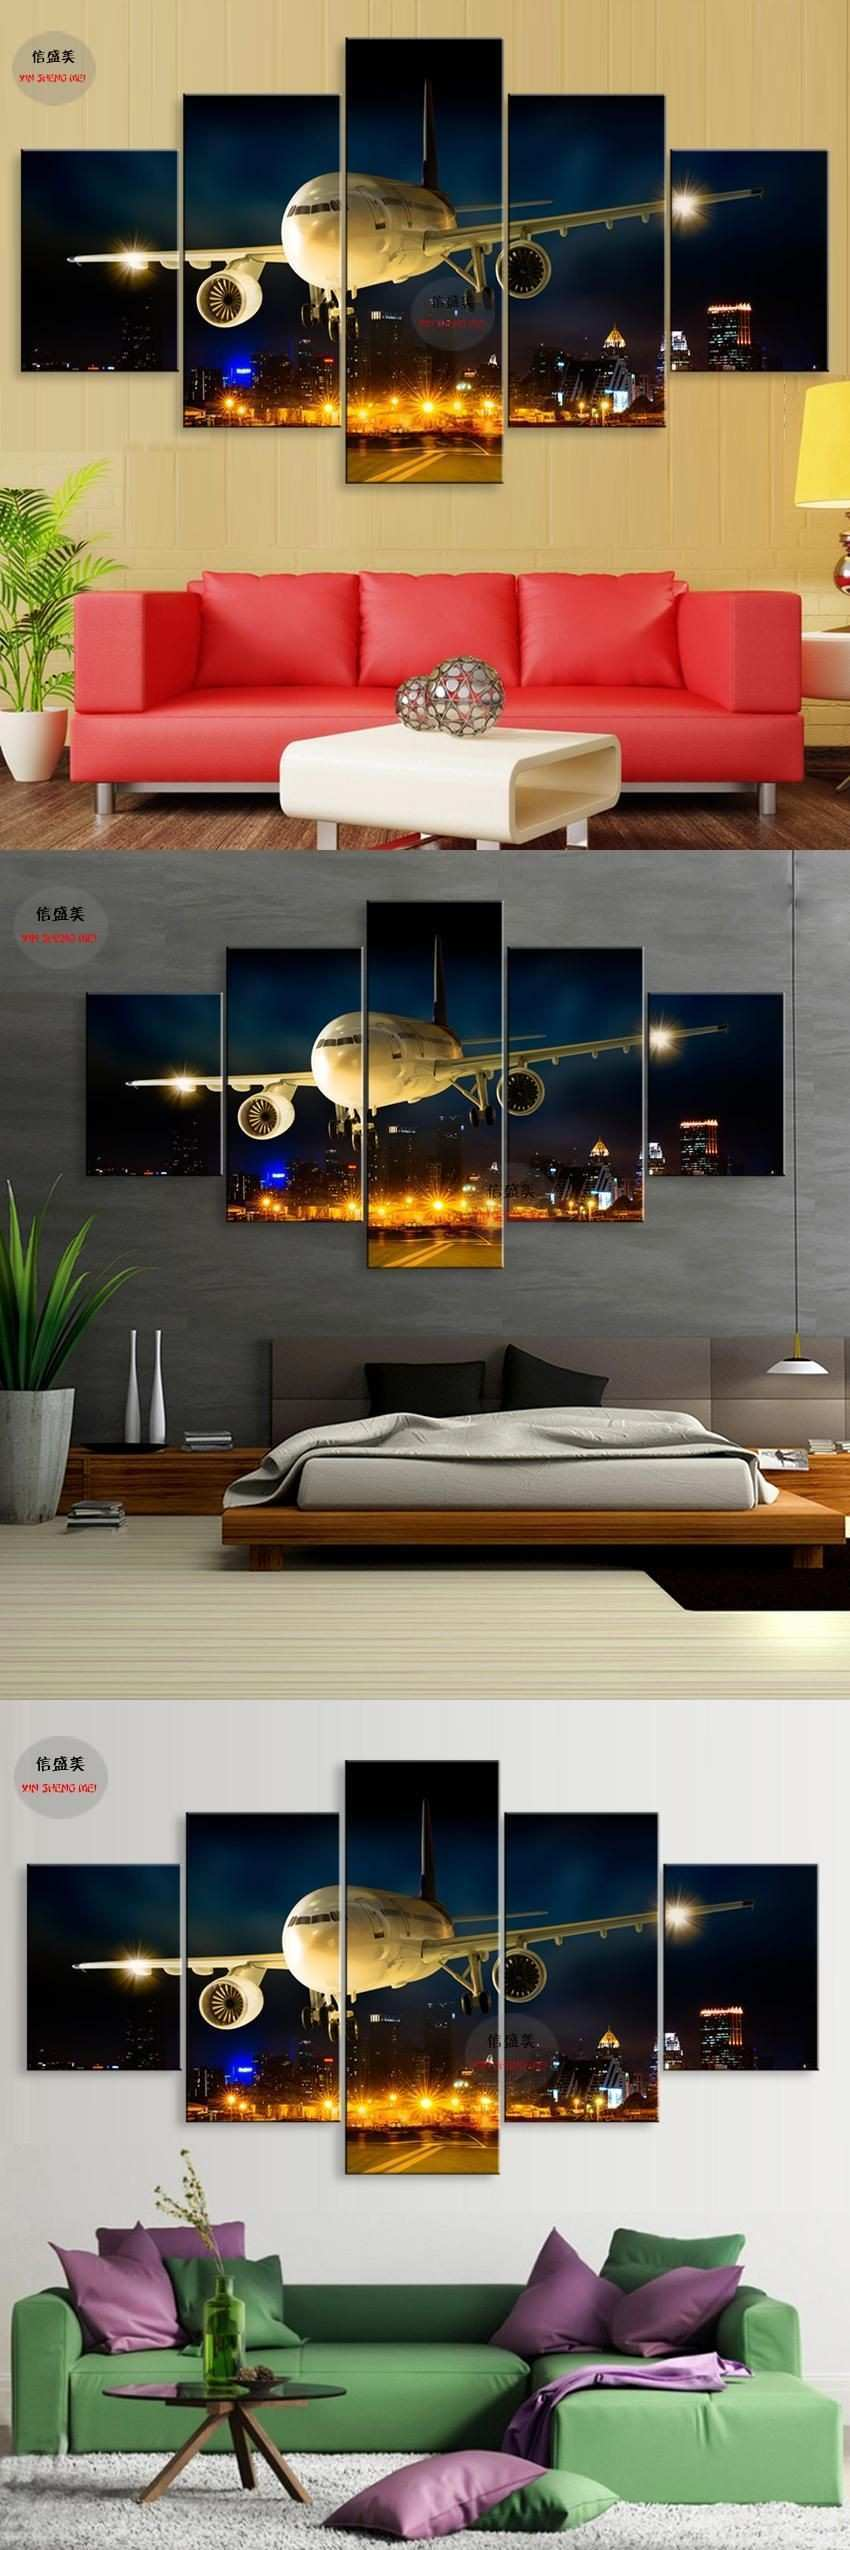 5 Piece Canvas Art Wall For Living Room Painting Home Decor